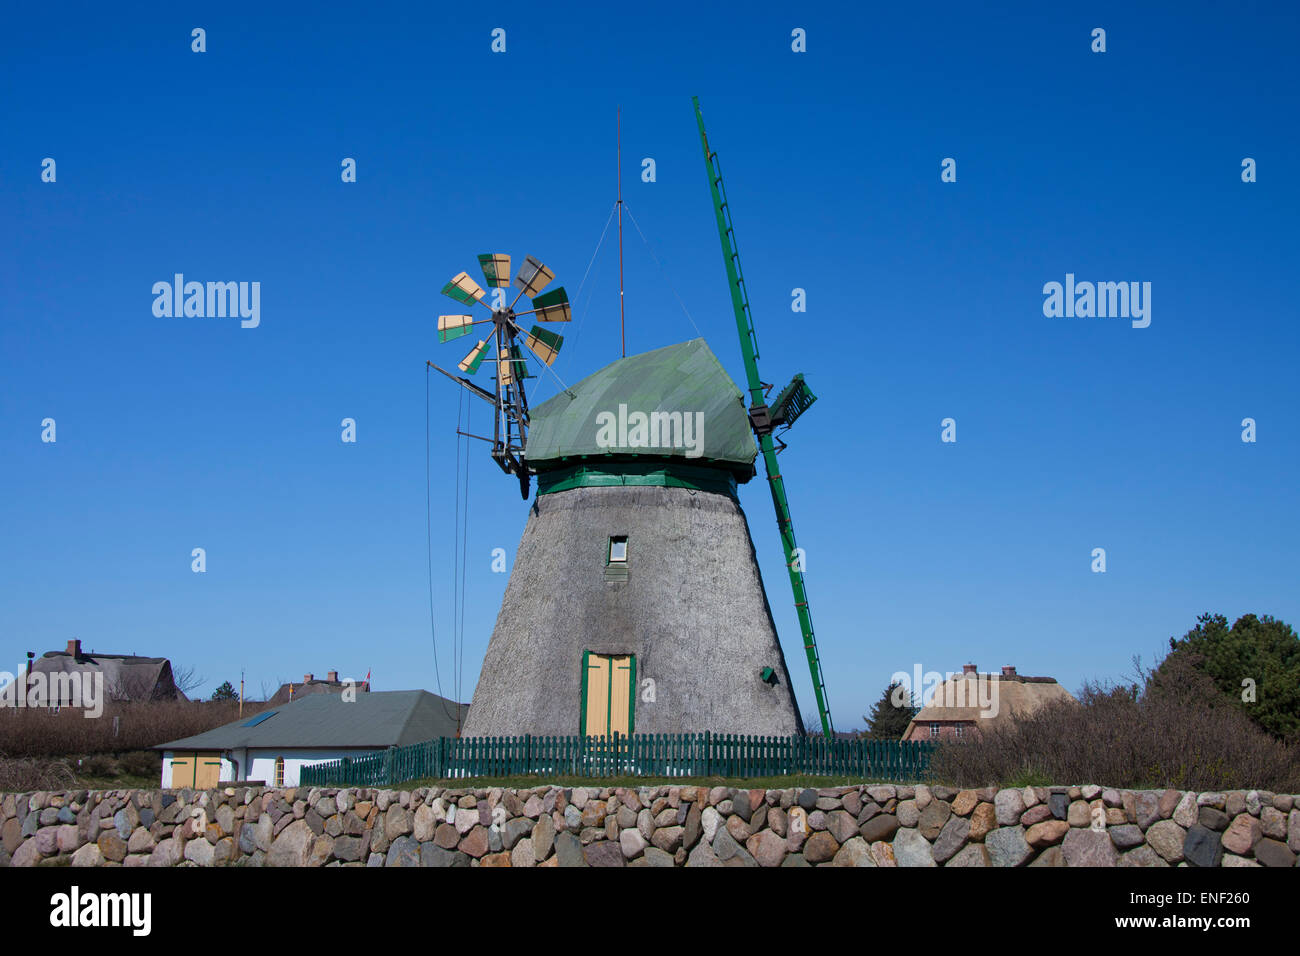 Traditional windmill at Nebel, Amrum island, Nordfriesland / Northern Friesland, Schleswig-Holstein, Germany Stock Photo